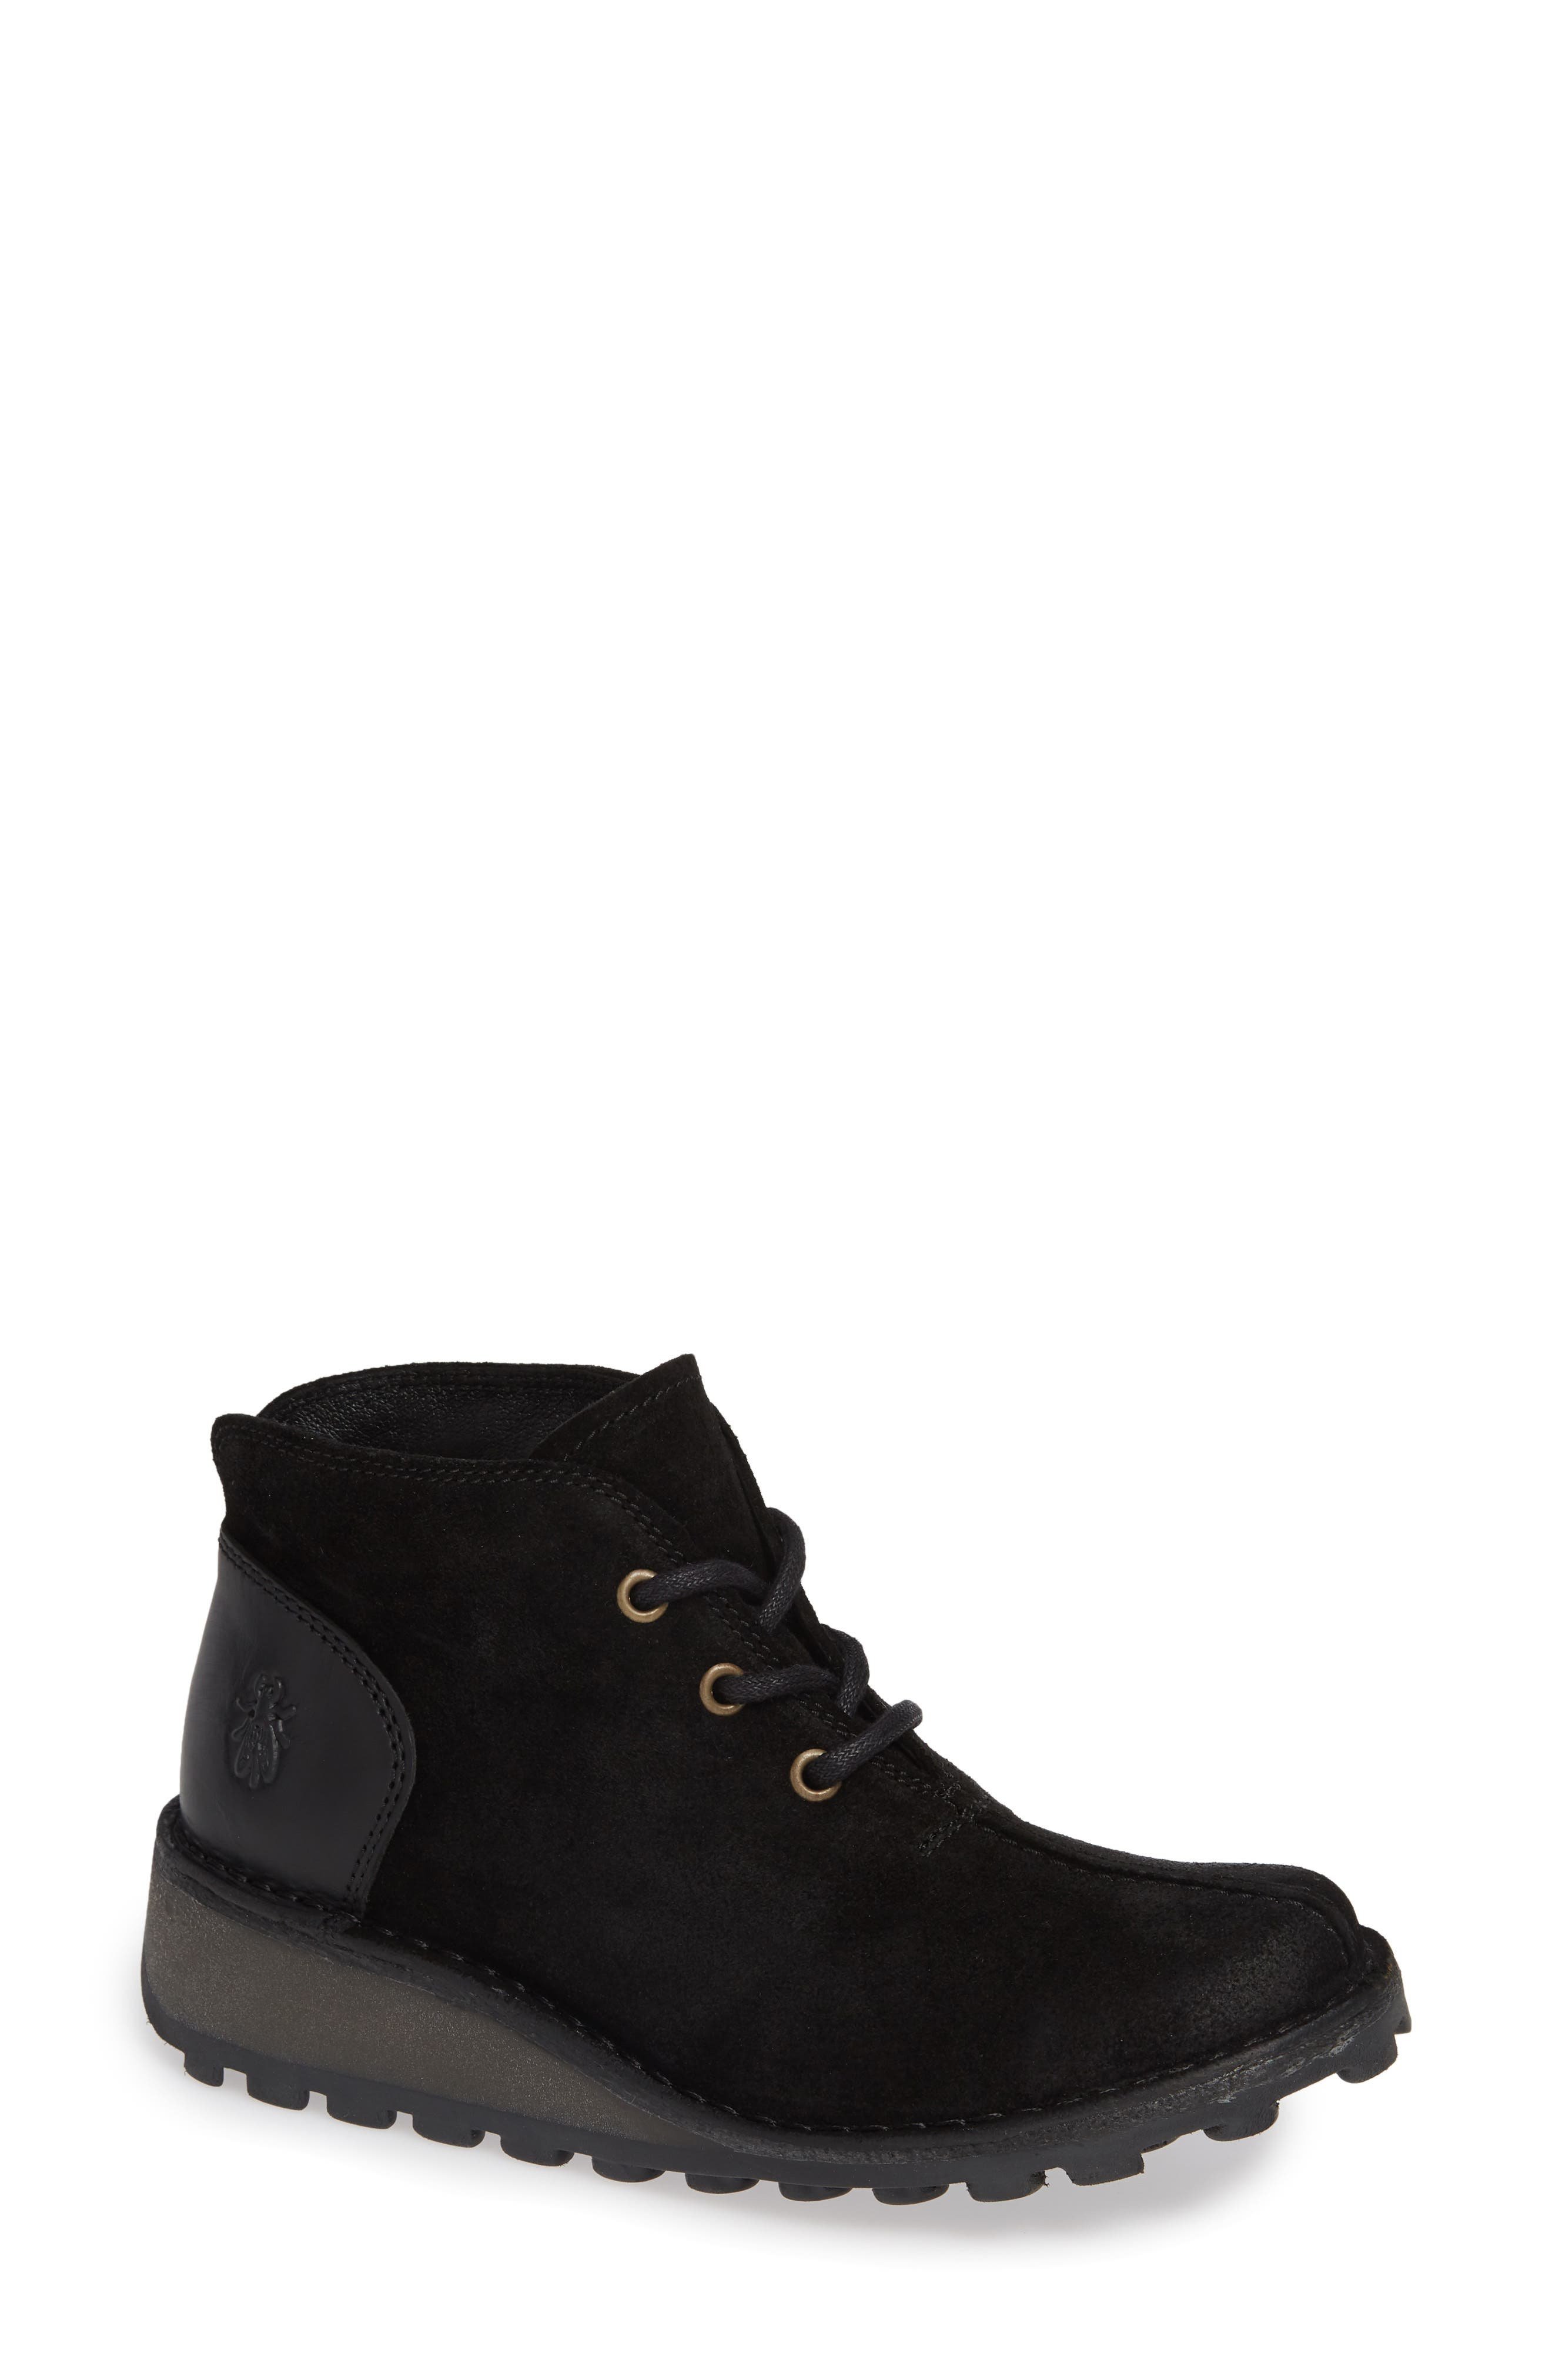 Fly London Mili Wedge Bootie - Black